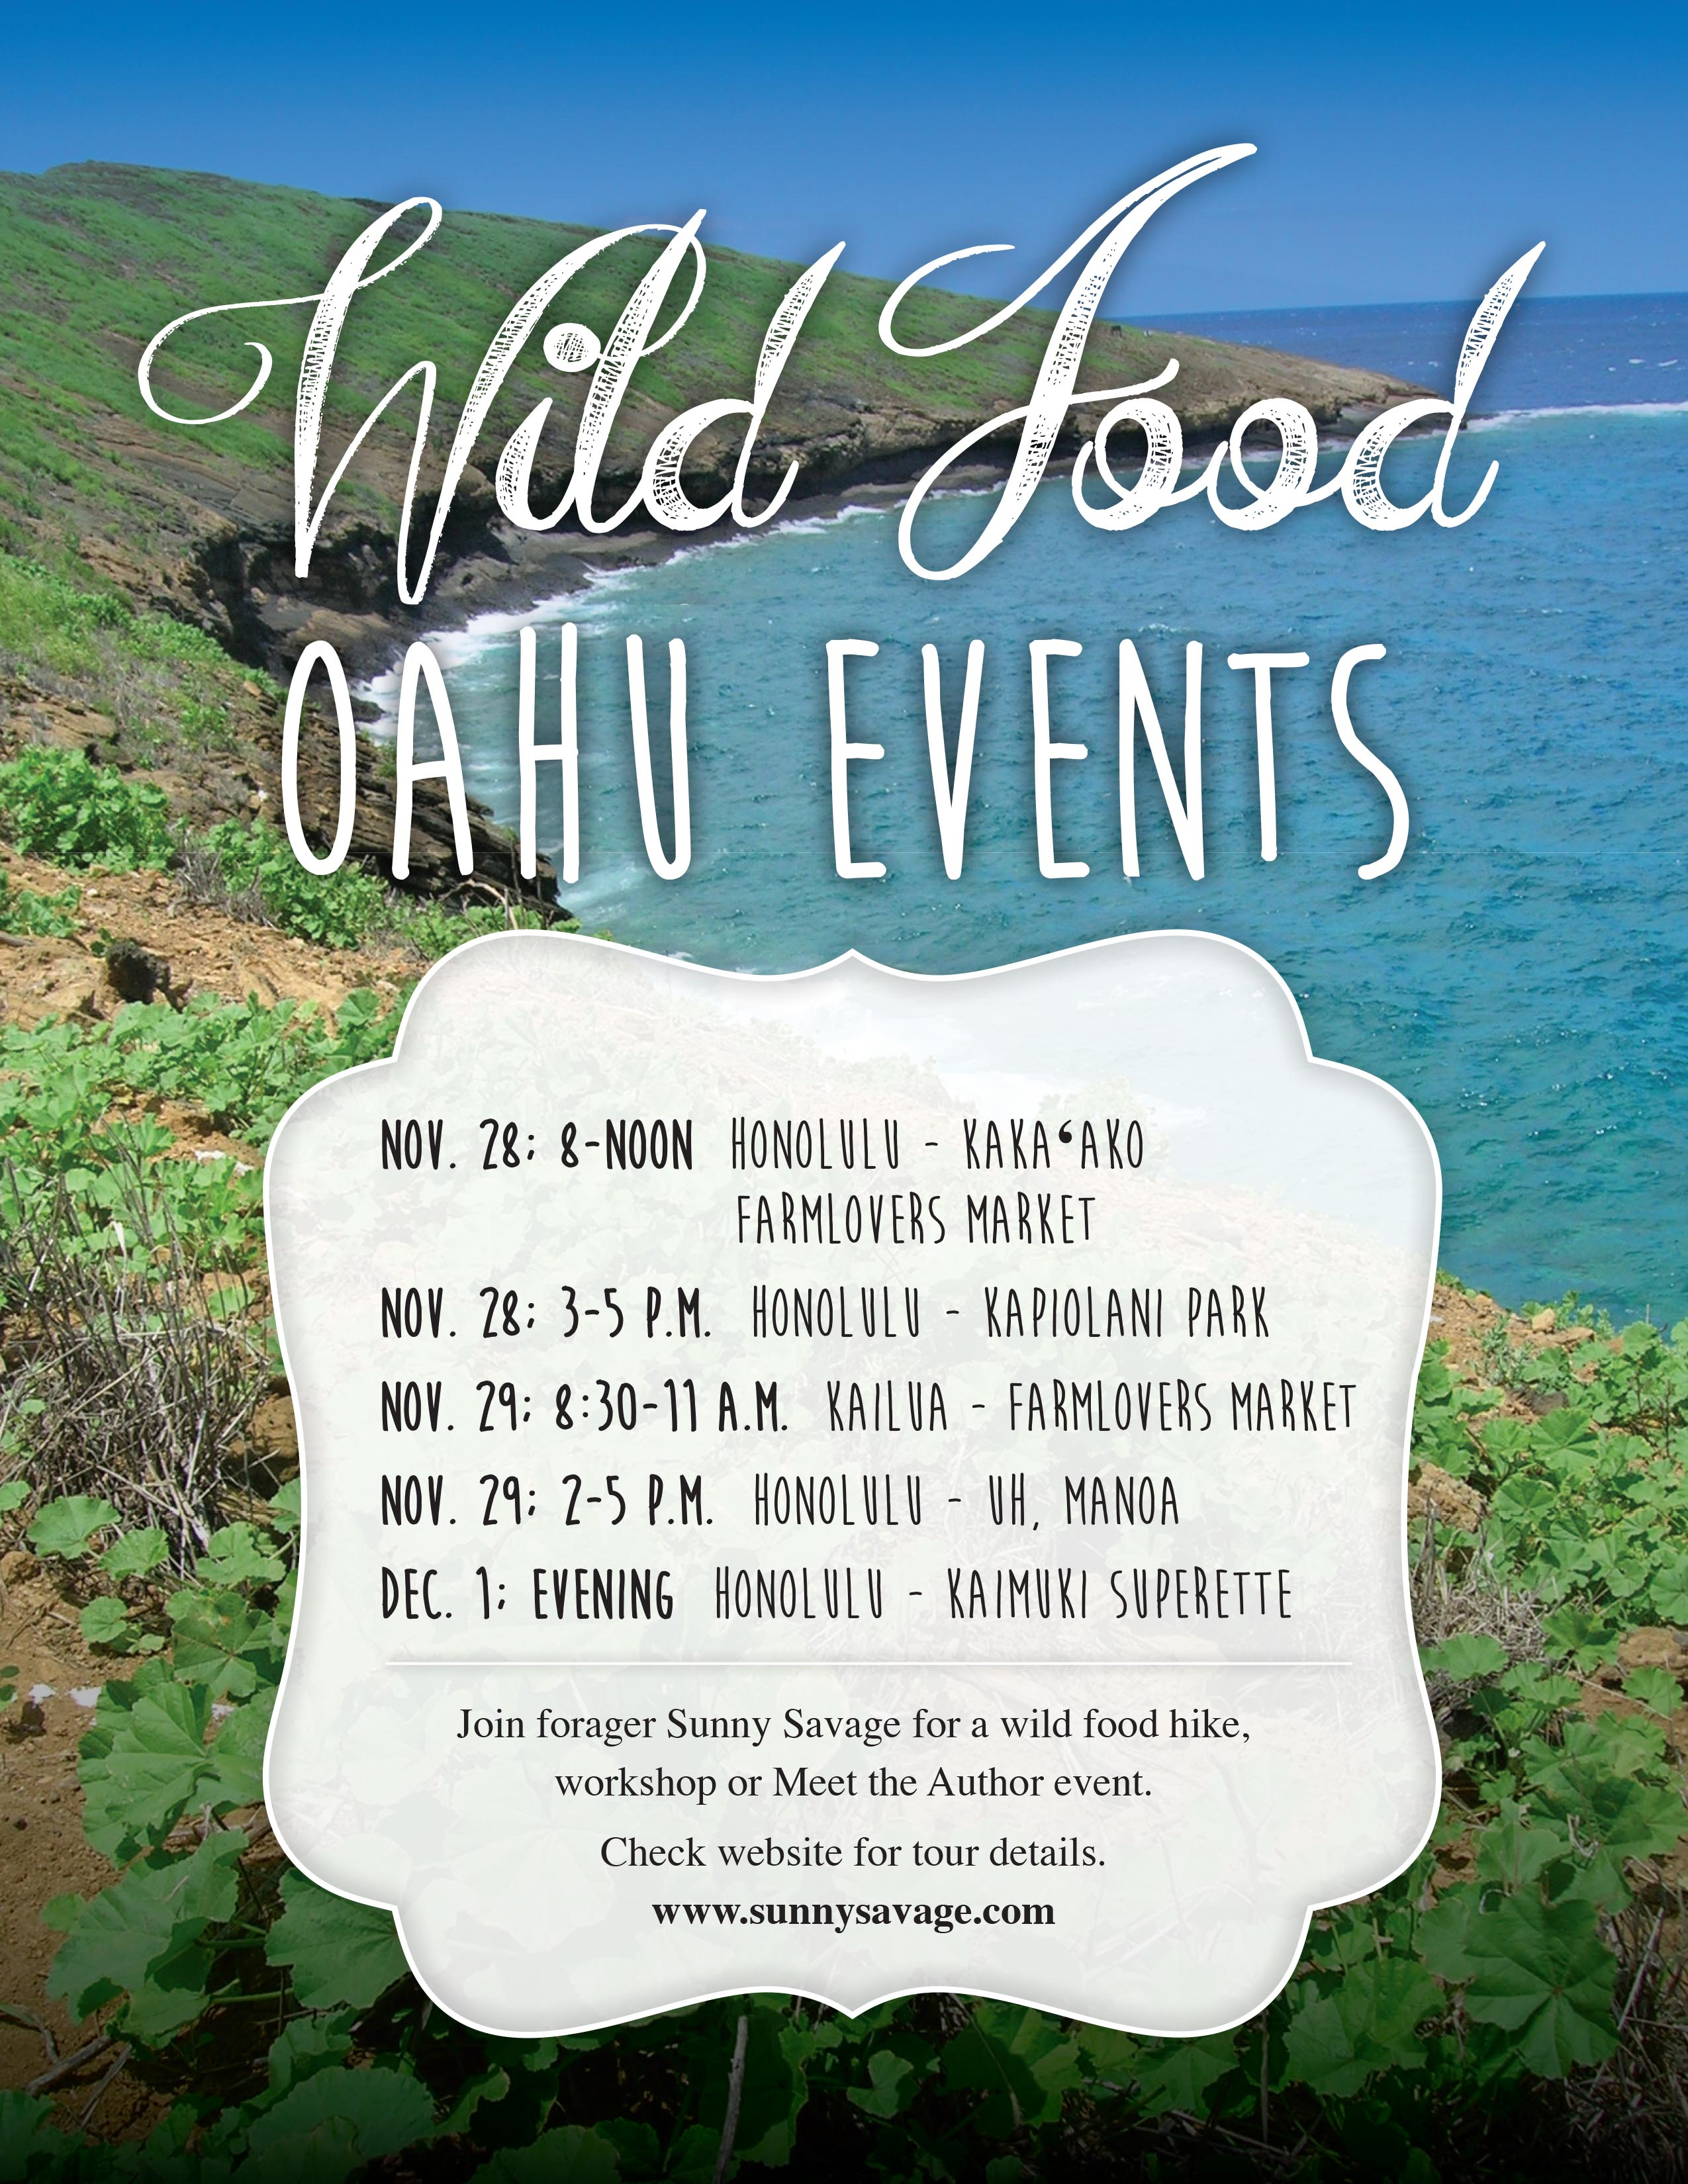 Oahu wild food Events Flyer